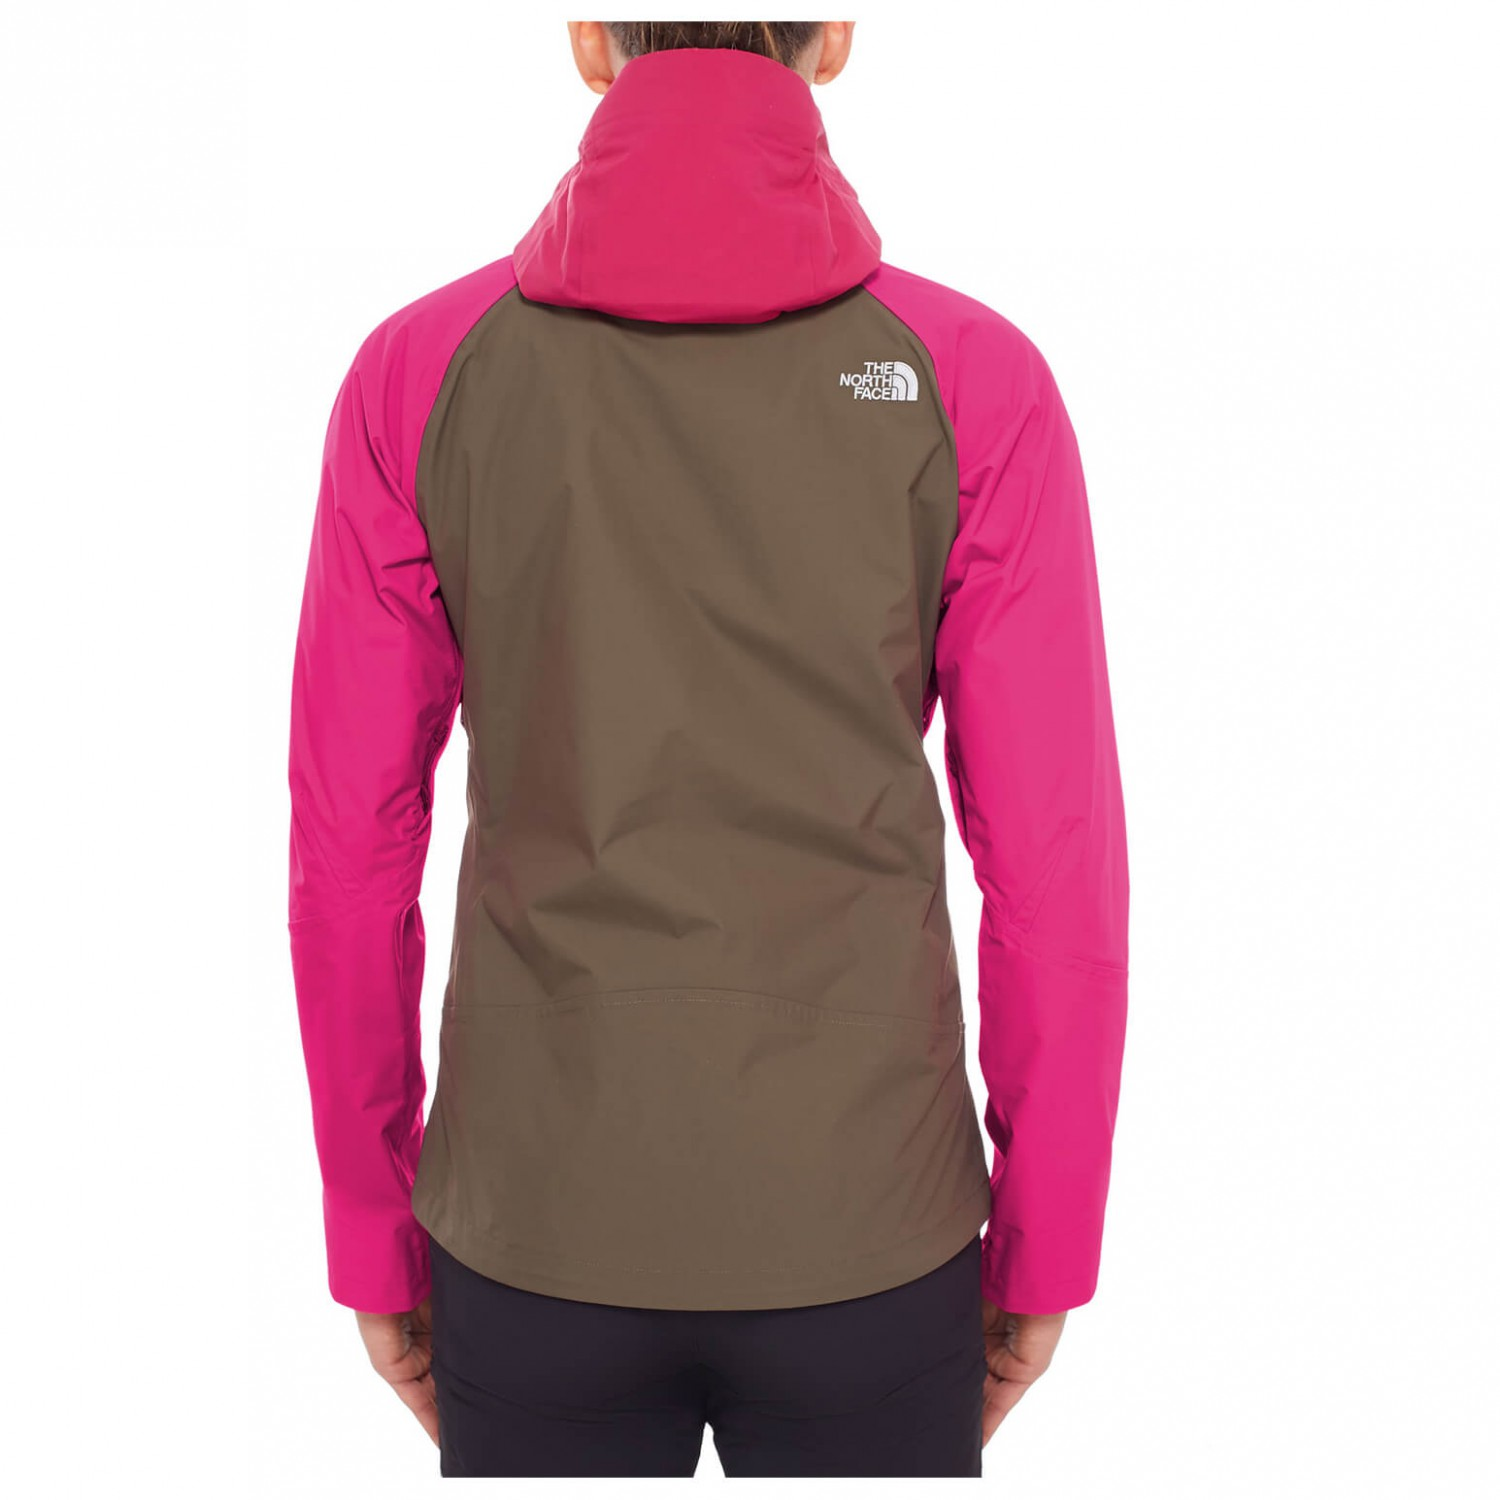 12a6ee968ef ... The North Face - Women s Stratos Jacket - Waterproof jacket ...